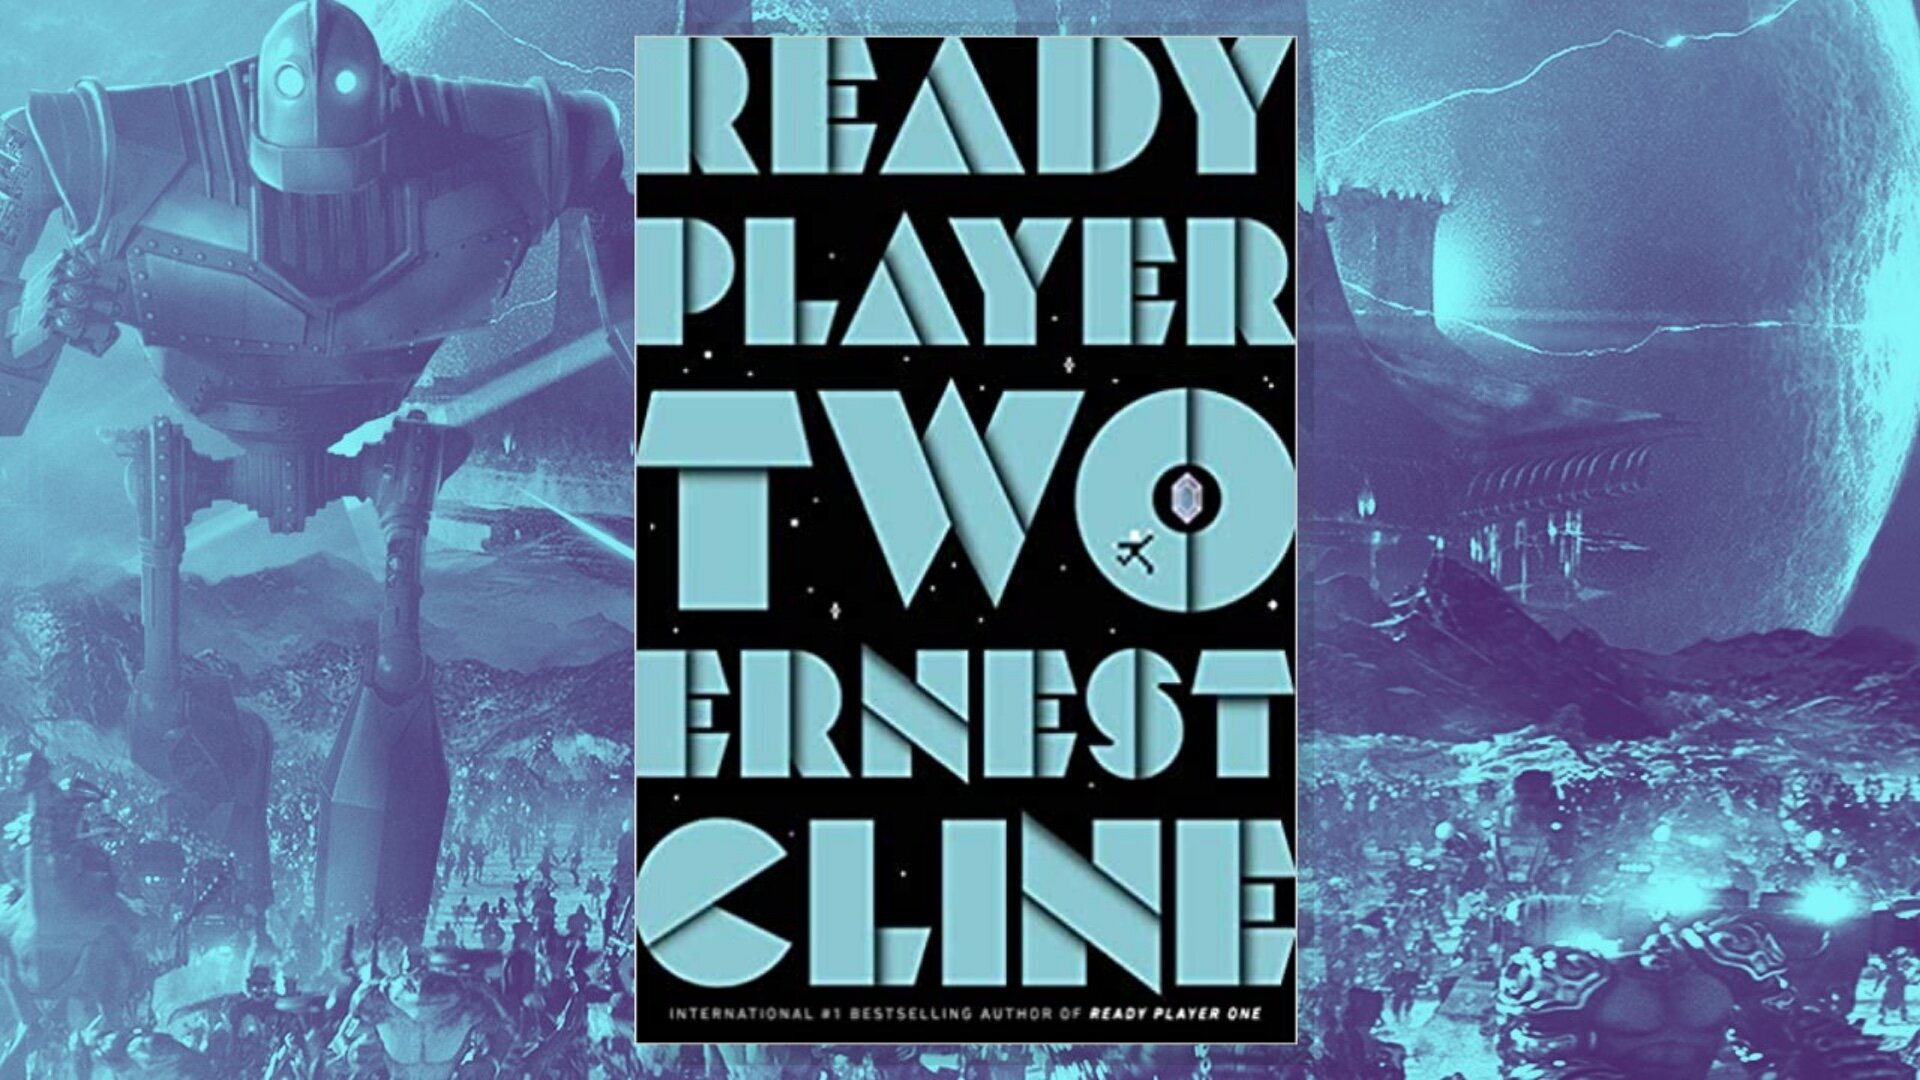 Download Ready Player Two Images